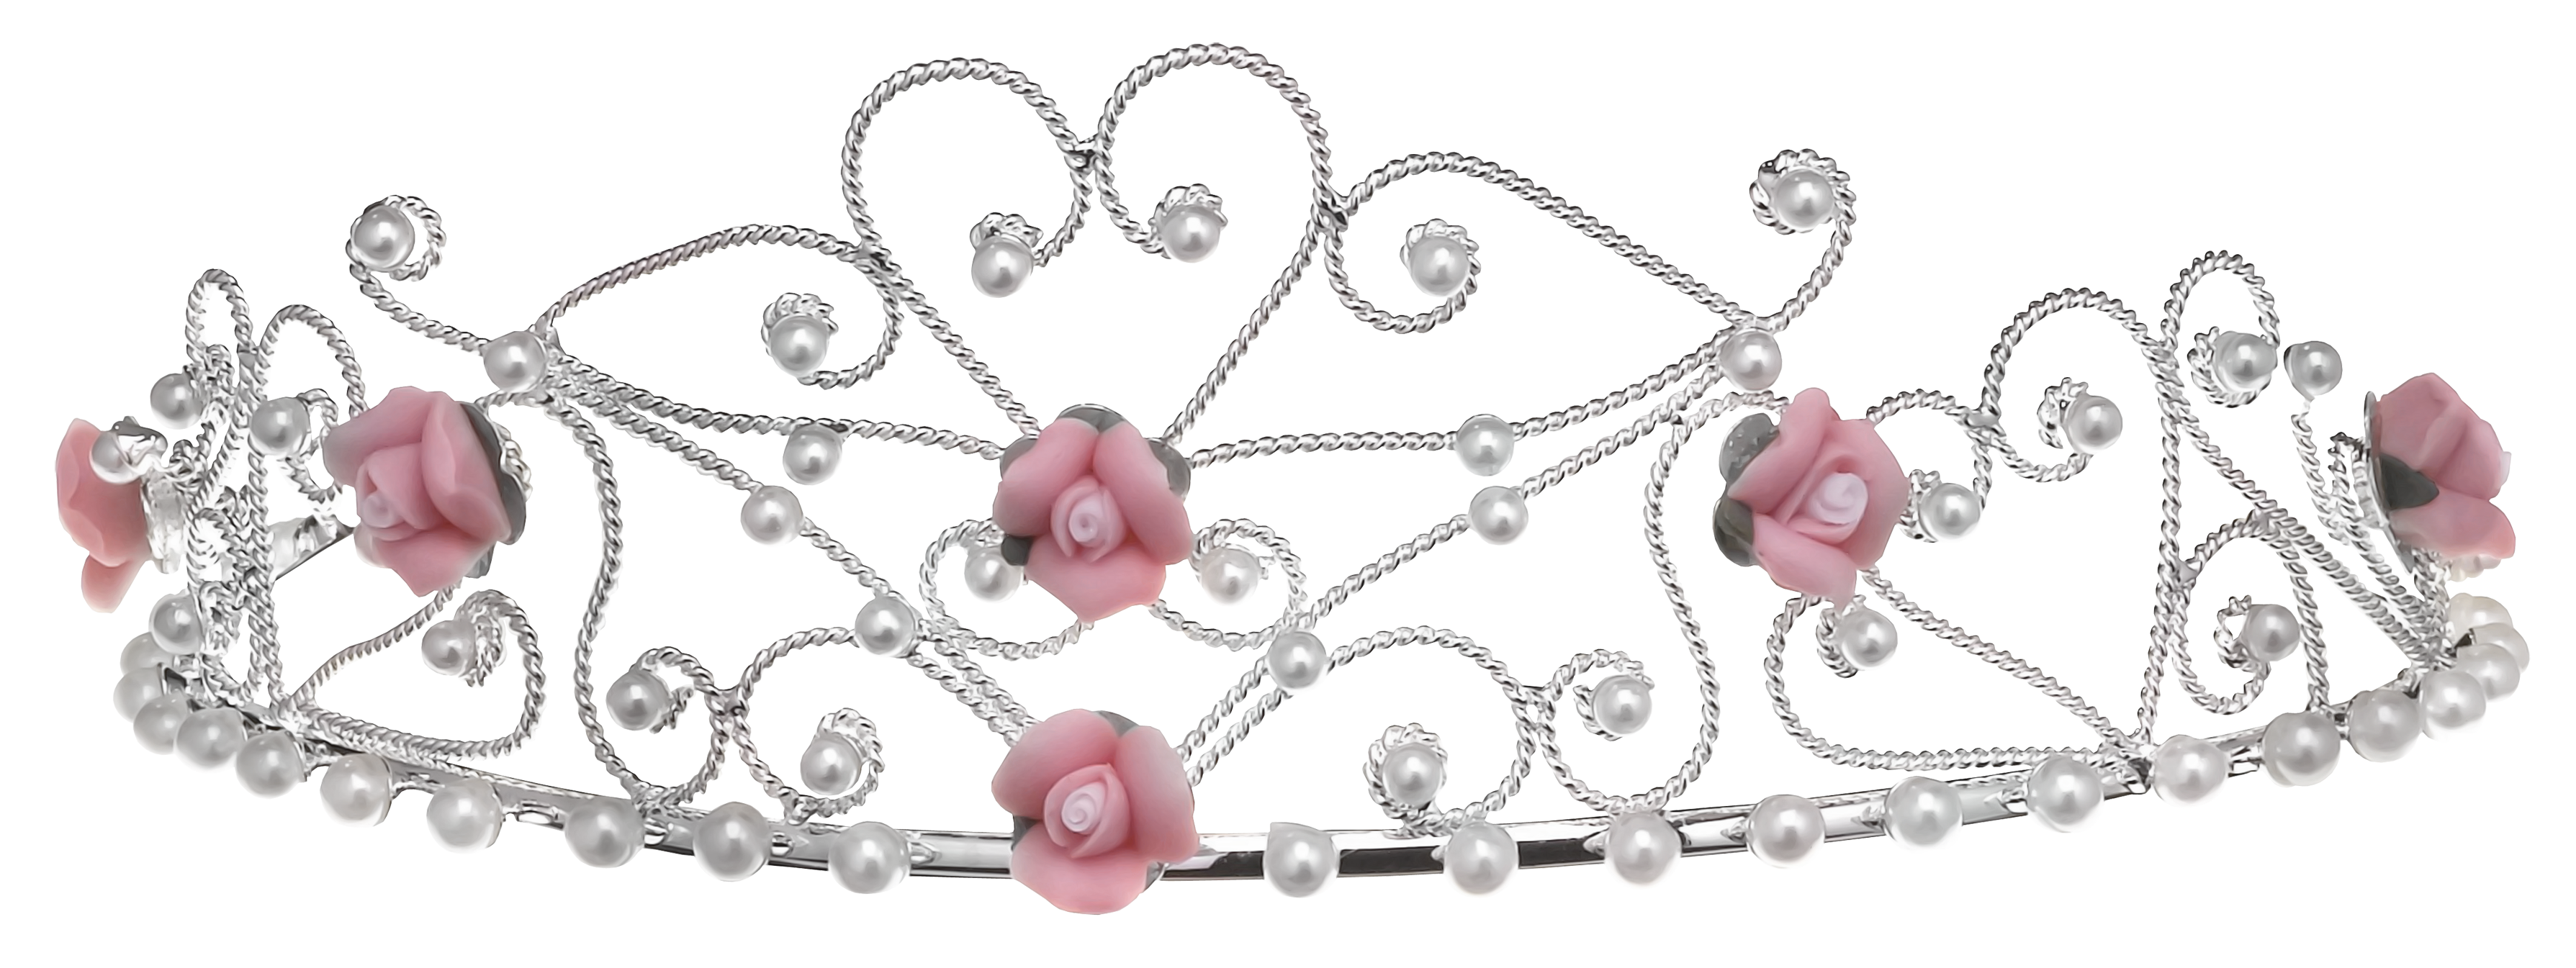 Girl jewel tiarra chain clipart graphic Pin by abdulqayoom on Jewllry | Crown png, Clip art, Pink crown graphic